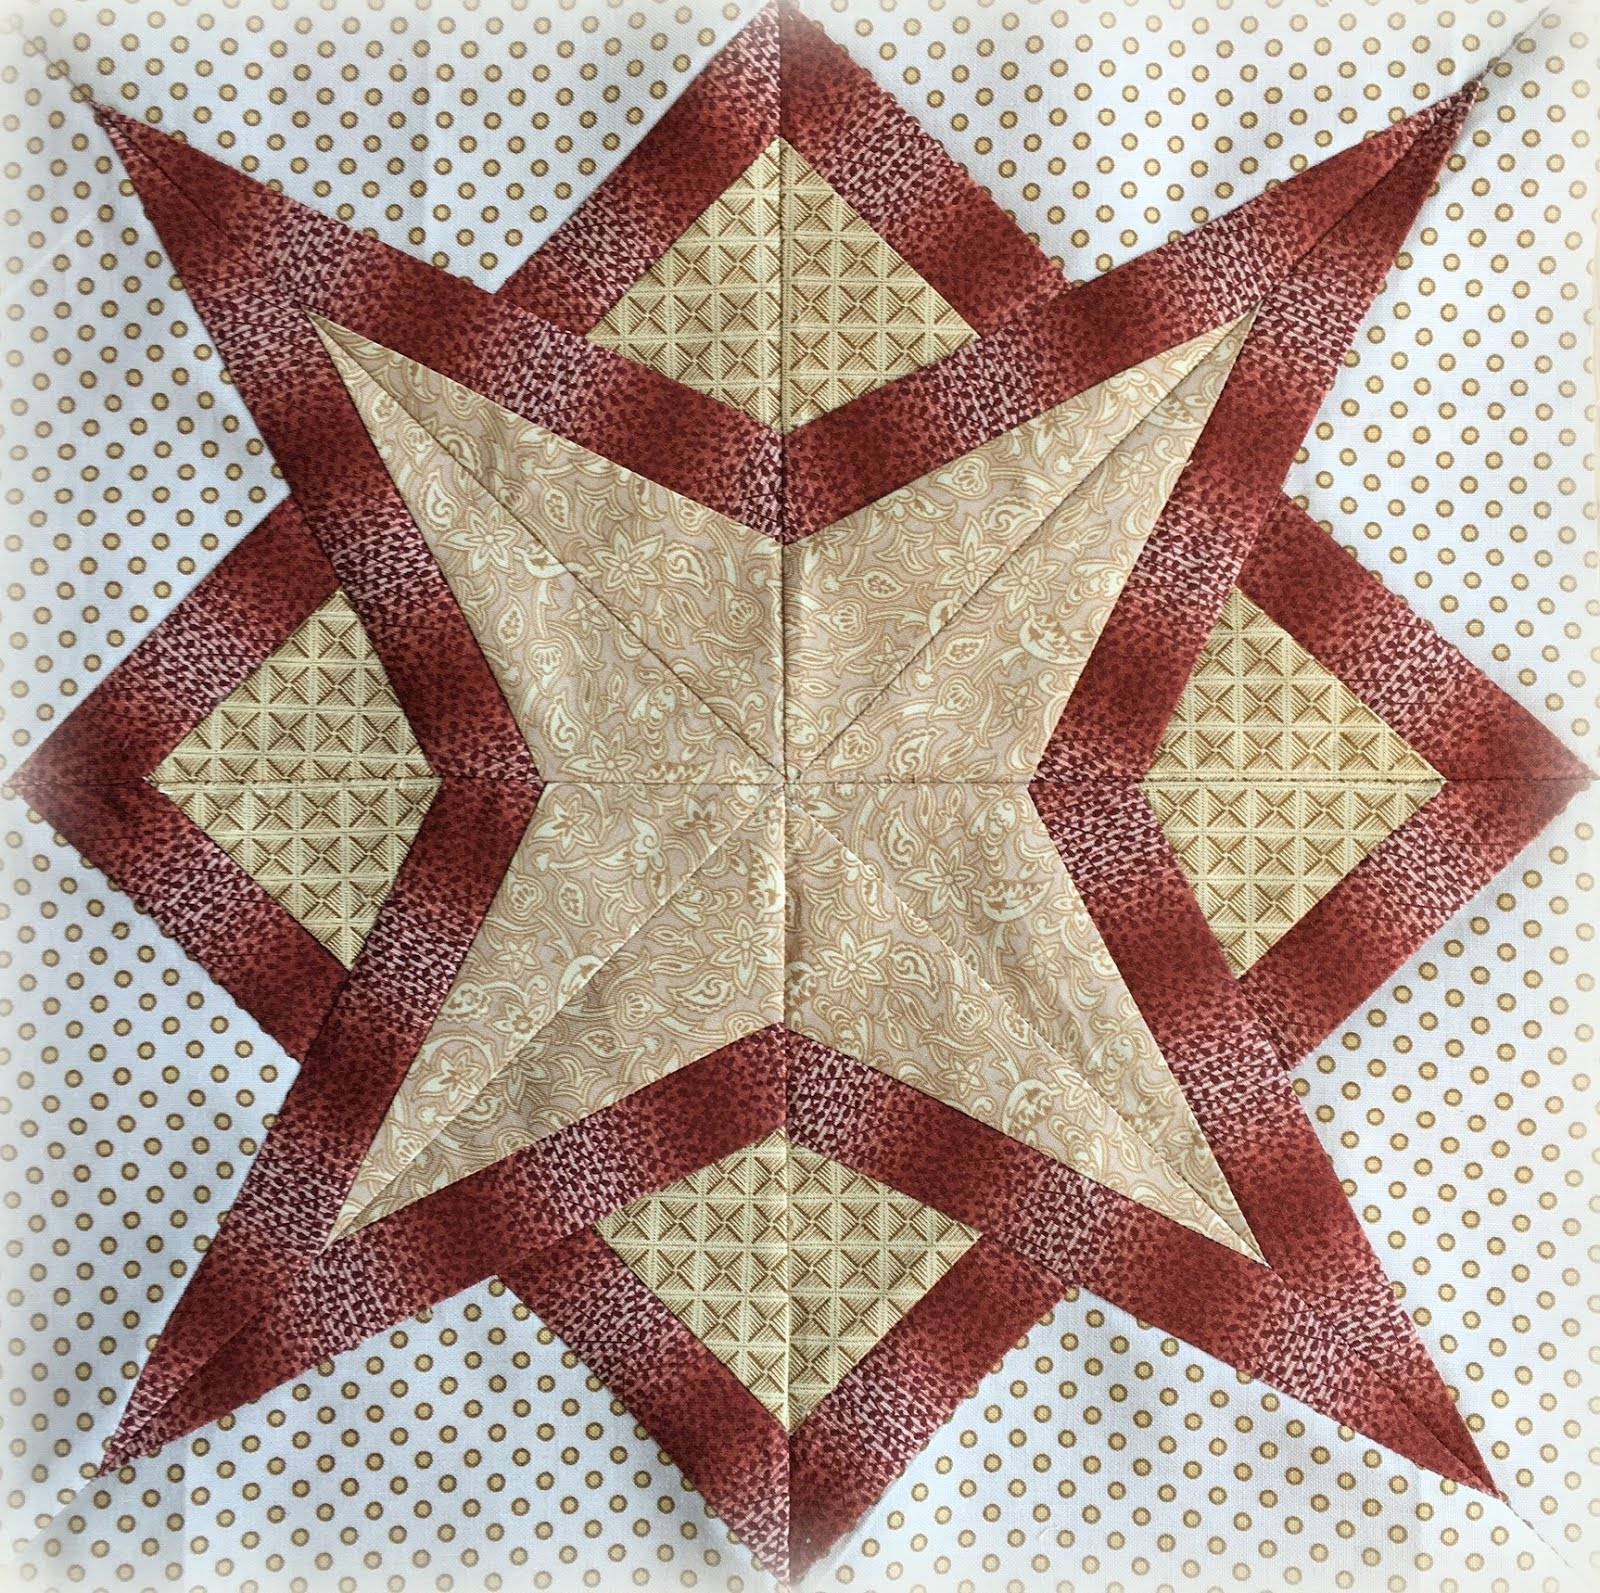 wheat sheaf 1 | Sweet Dreams Quilt Studio |Wheat Quilt Patterns